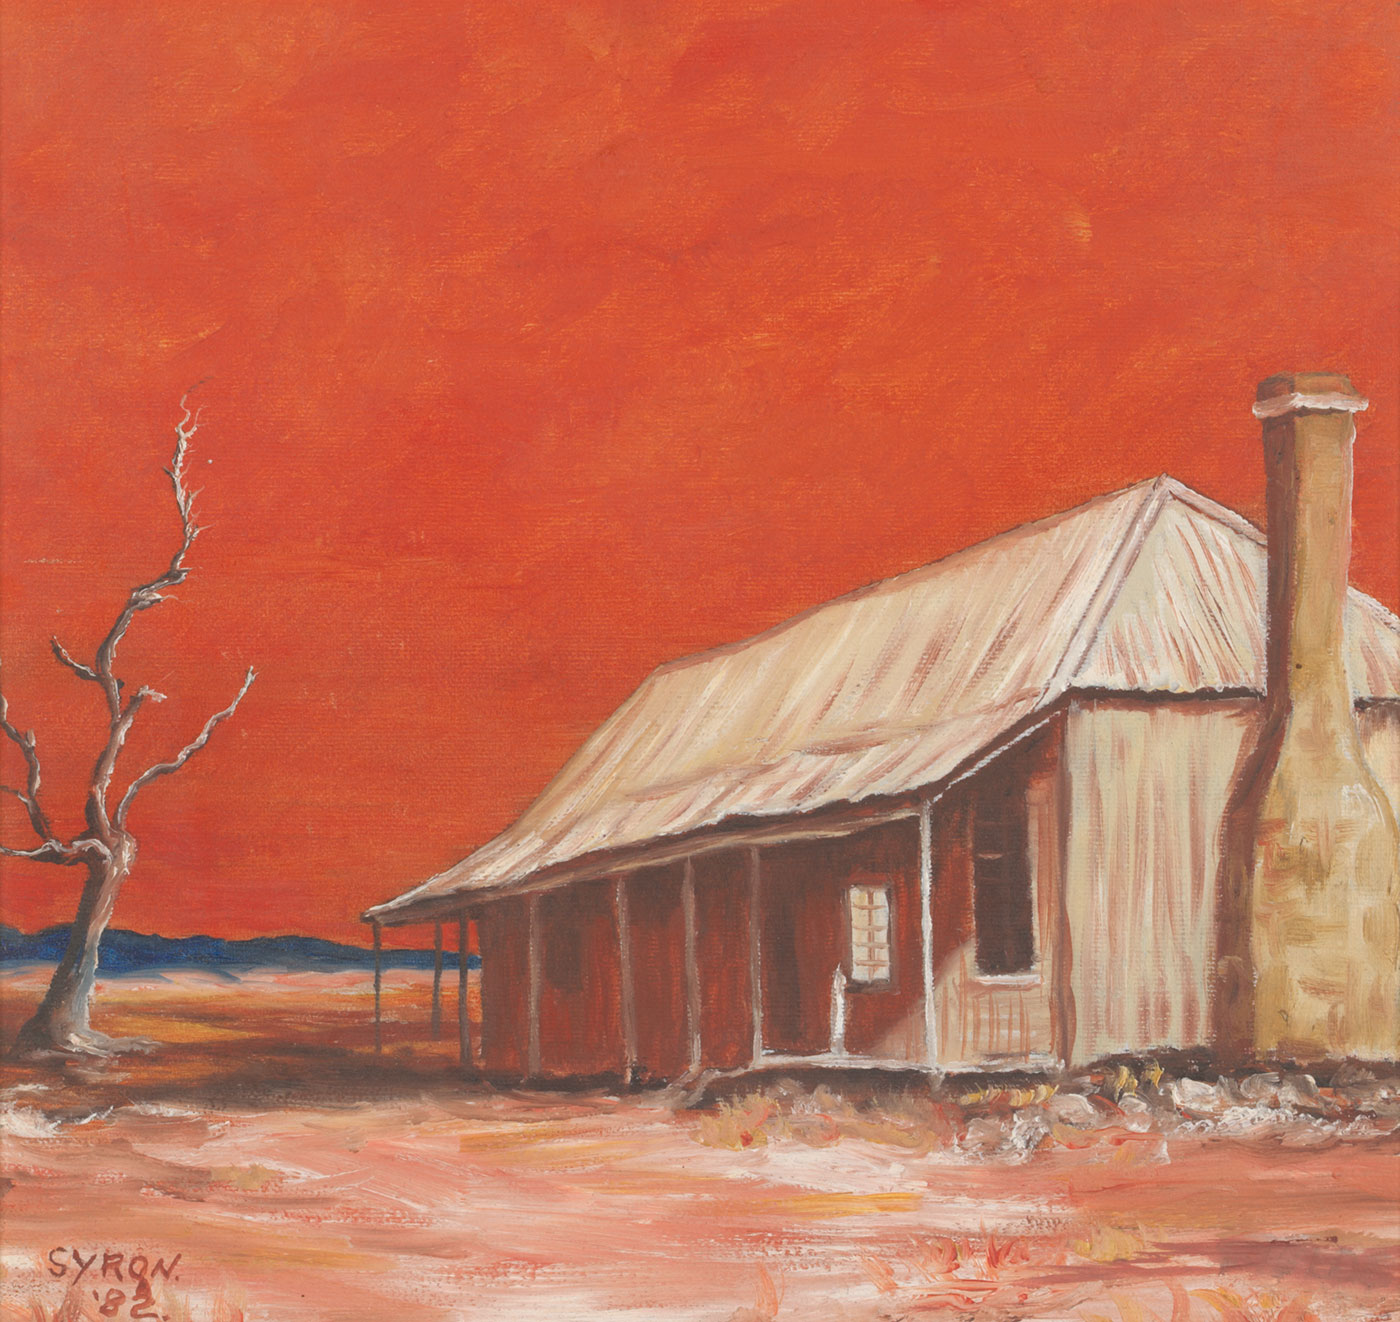 A colour painting on board featuring a dead tree and a building against a red sky. The slab-style hut, on the right, has a verandah at the front and a stone chimney at one side. In the bottom left corner of the painting is the signature 'SYRON. / '82'. The painting has a brown wooden frame with gold trim.